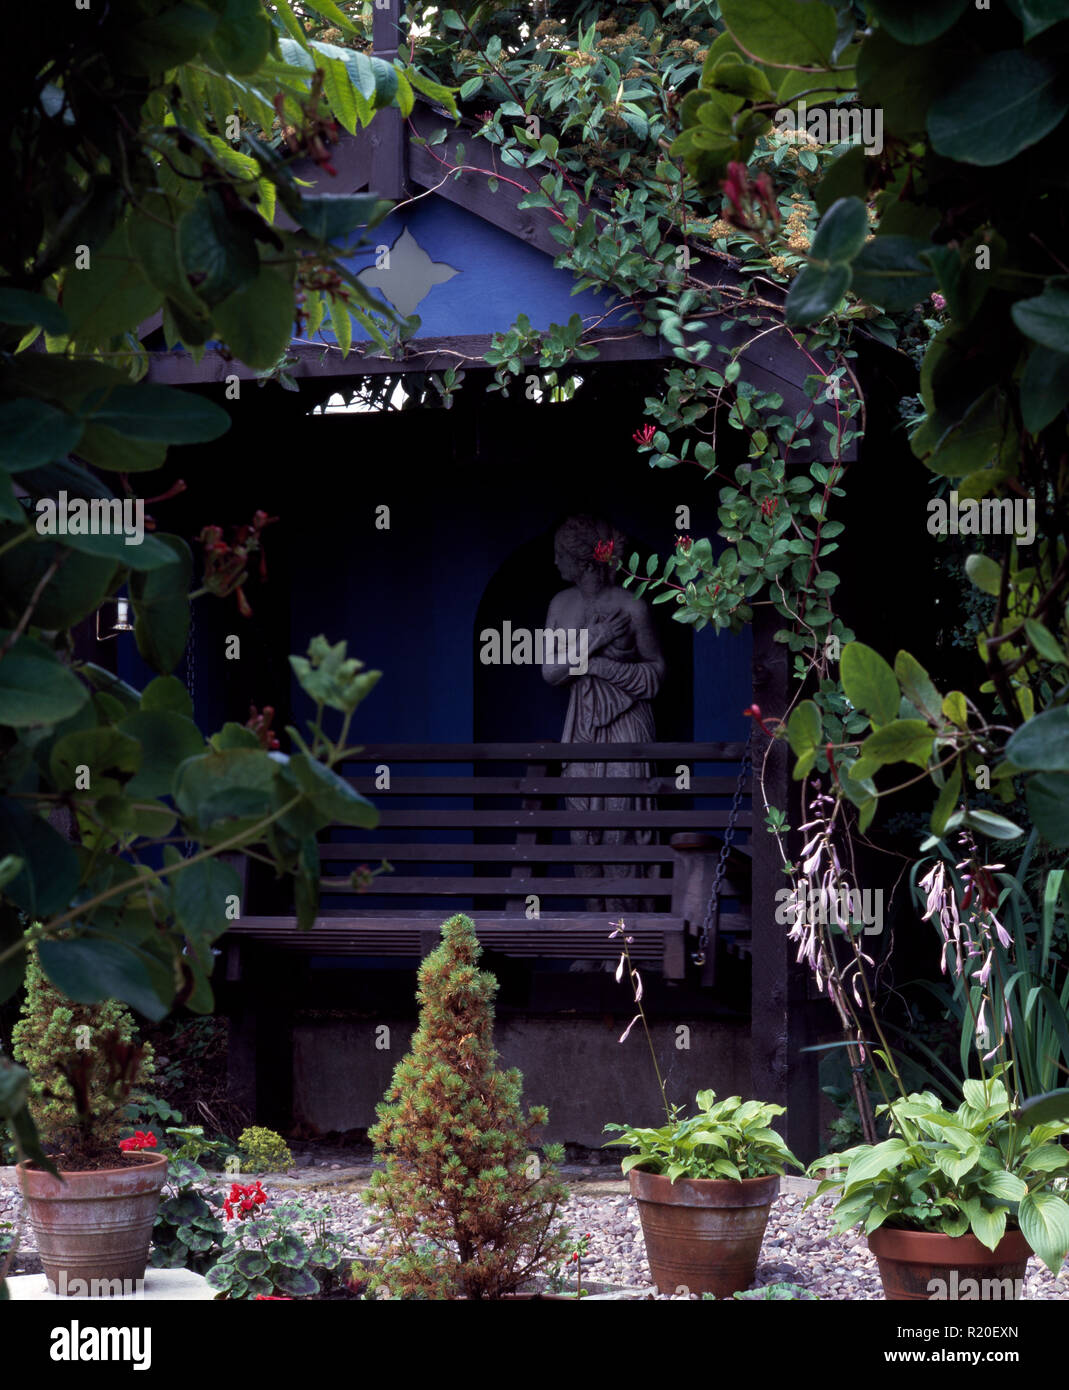 Green climbing plants around blue painted arbour with statue - Stock Image